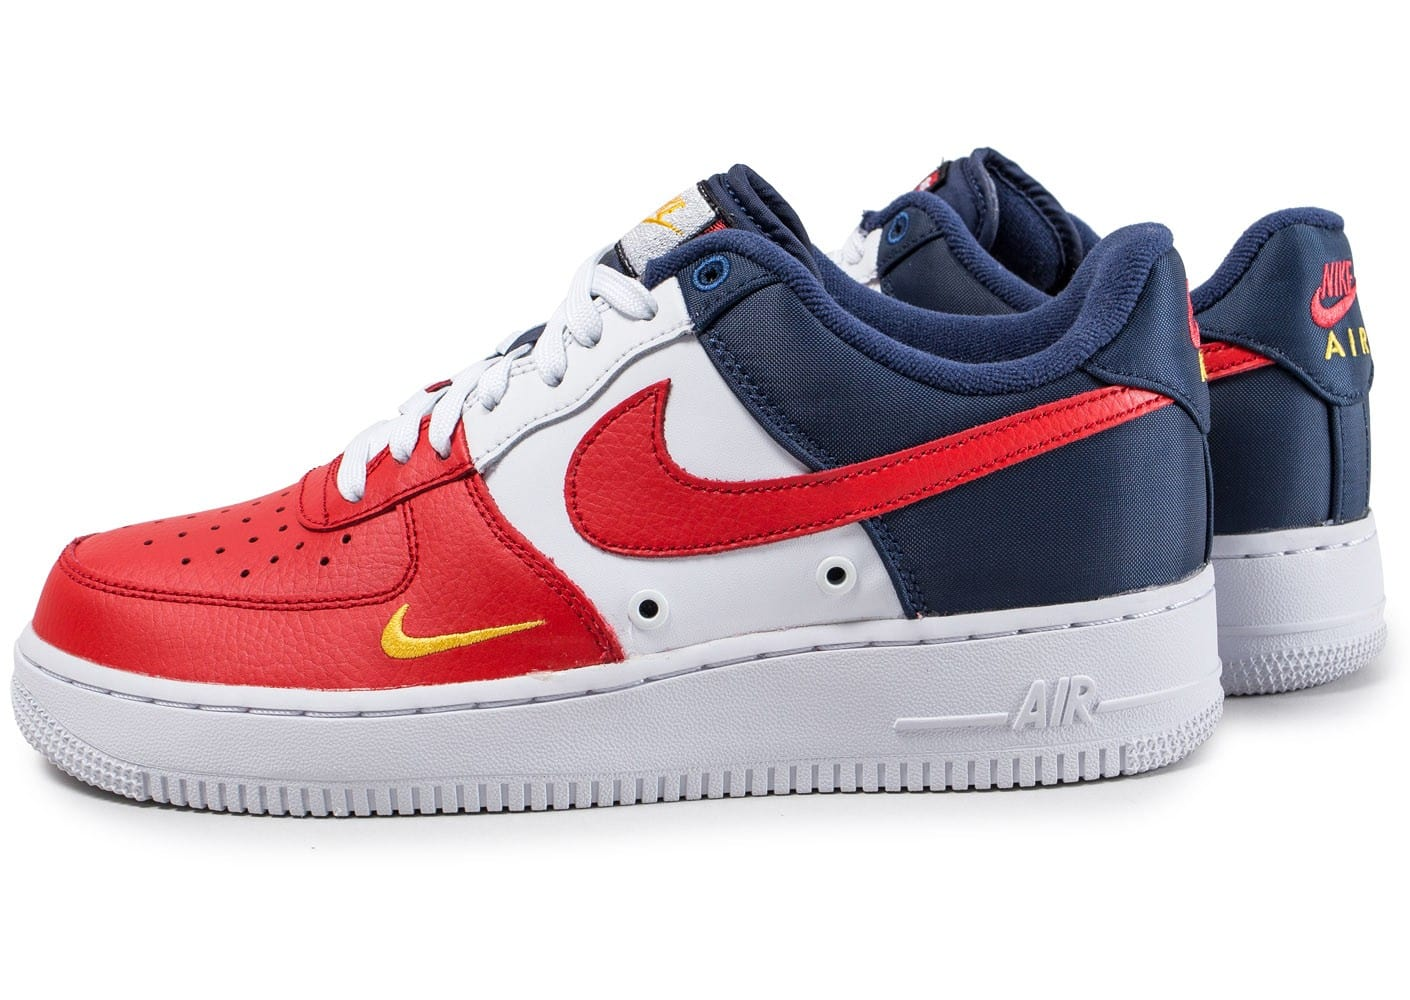 nike air force 1 39 07 lv8 mini swoosh bleu blanc rouge chaussures homme chausport. Black Bedroom Furniture Sets. Home Design Ideas